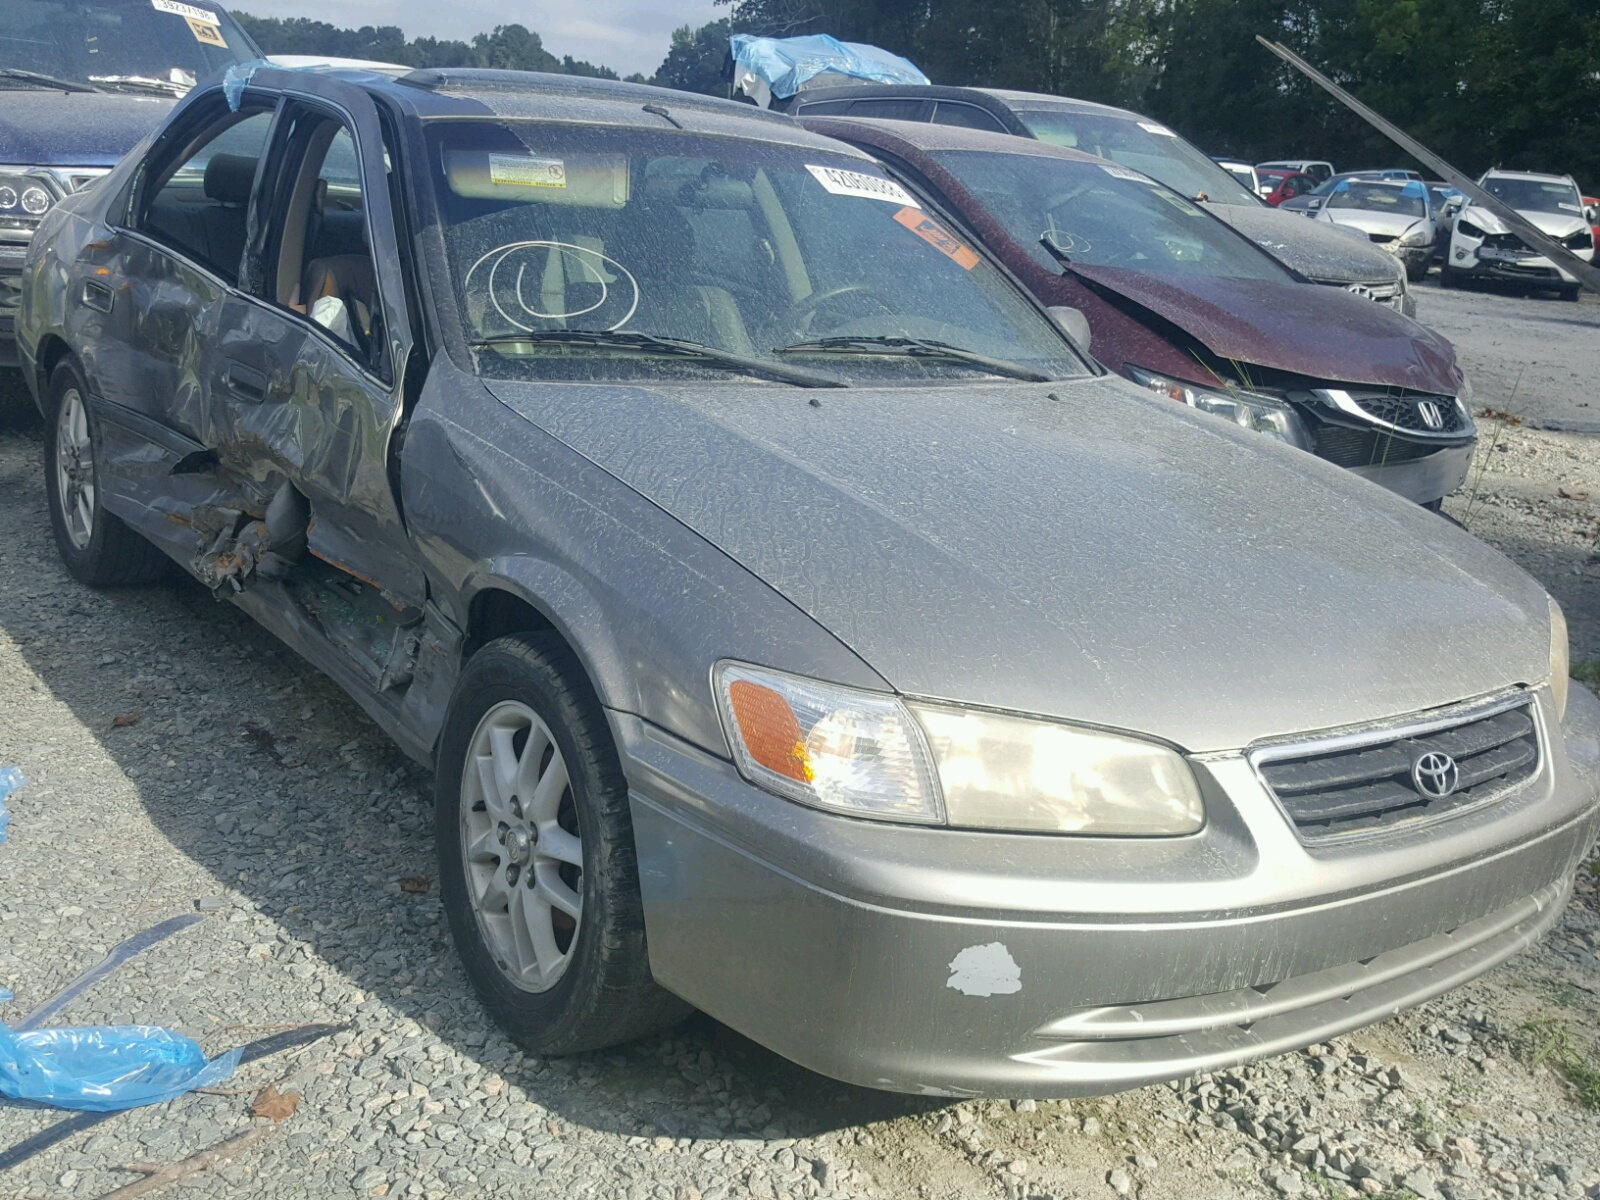 2000 Toyota Camry Le 3 0l For At Copart Auto Auction